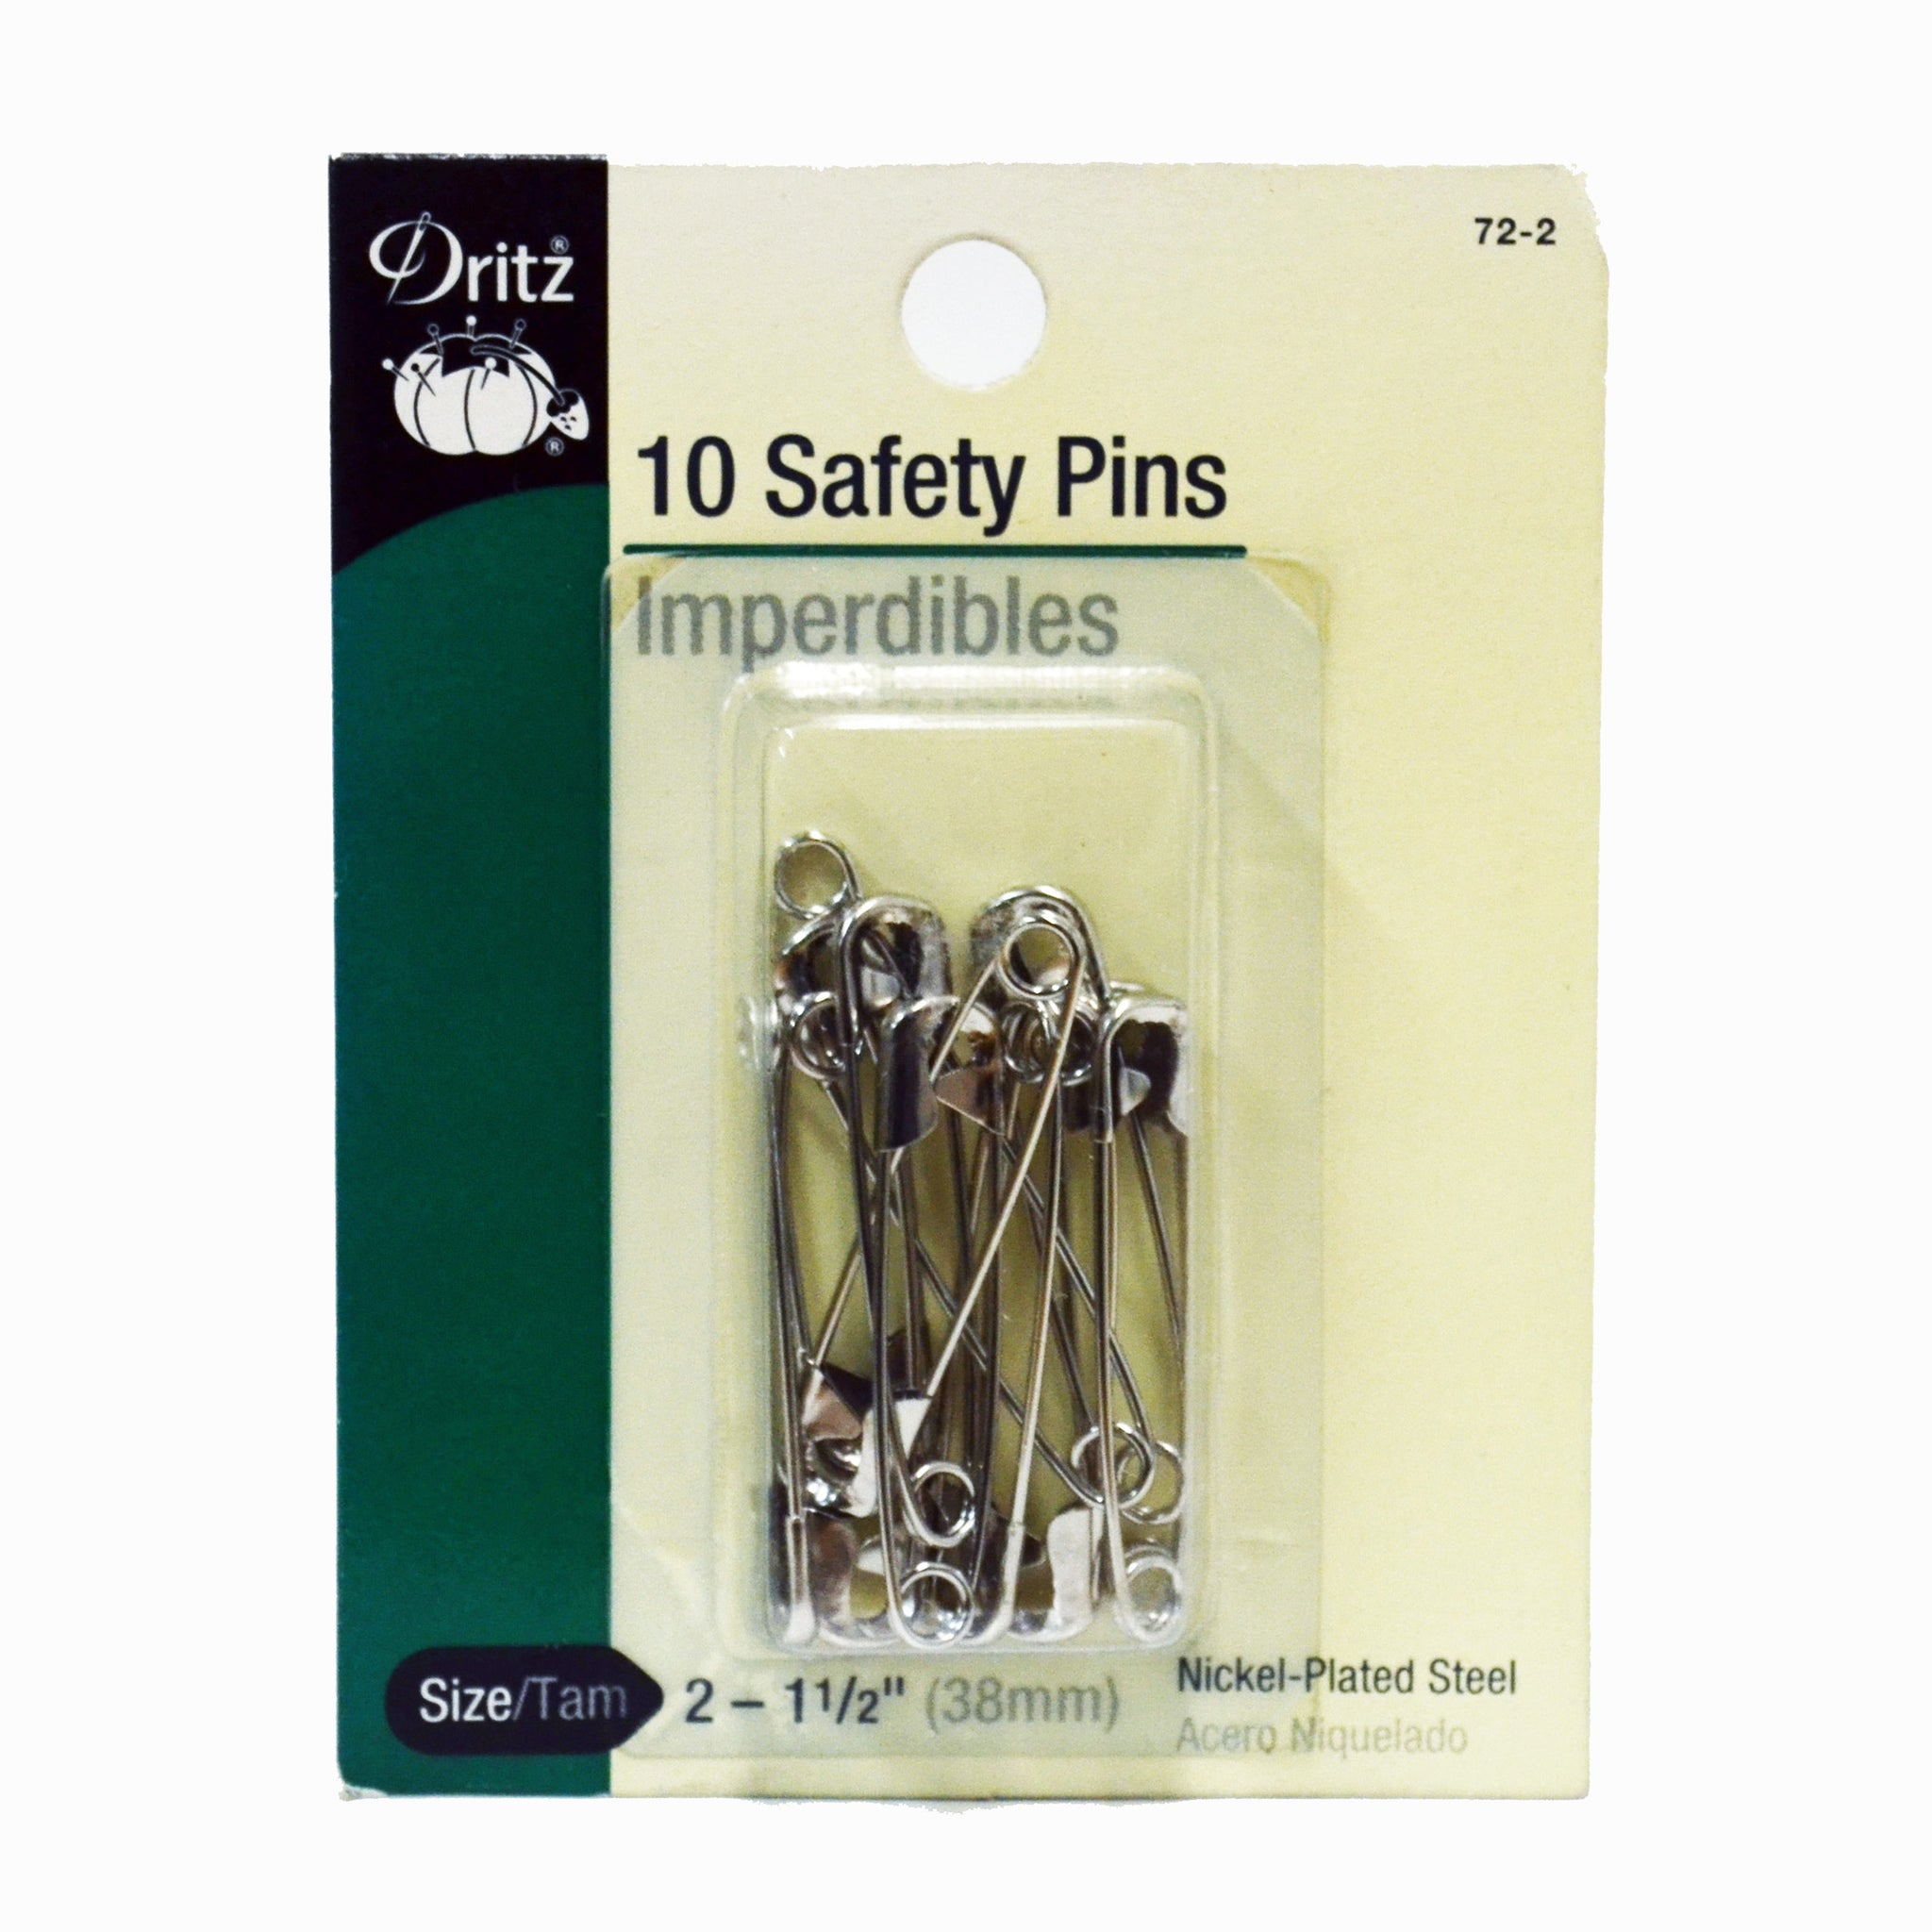 "#2 Safety Pins (1-1/2"")"